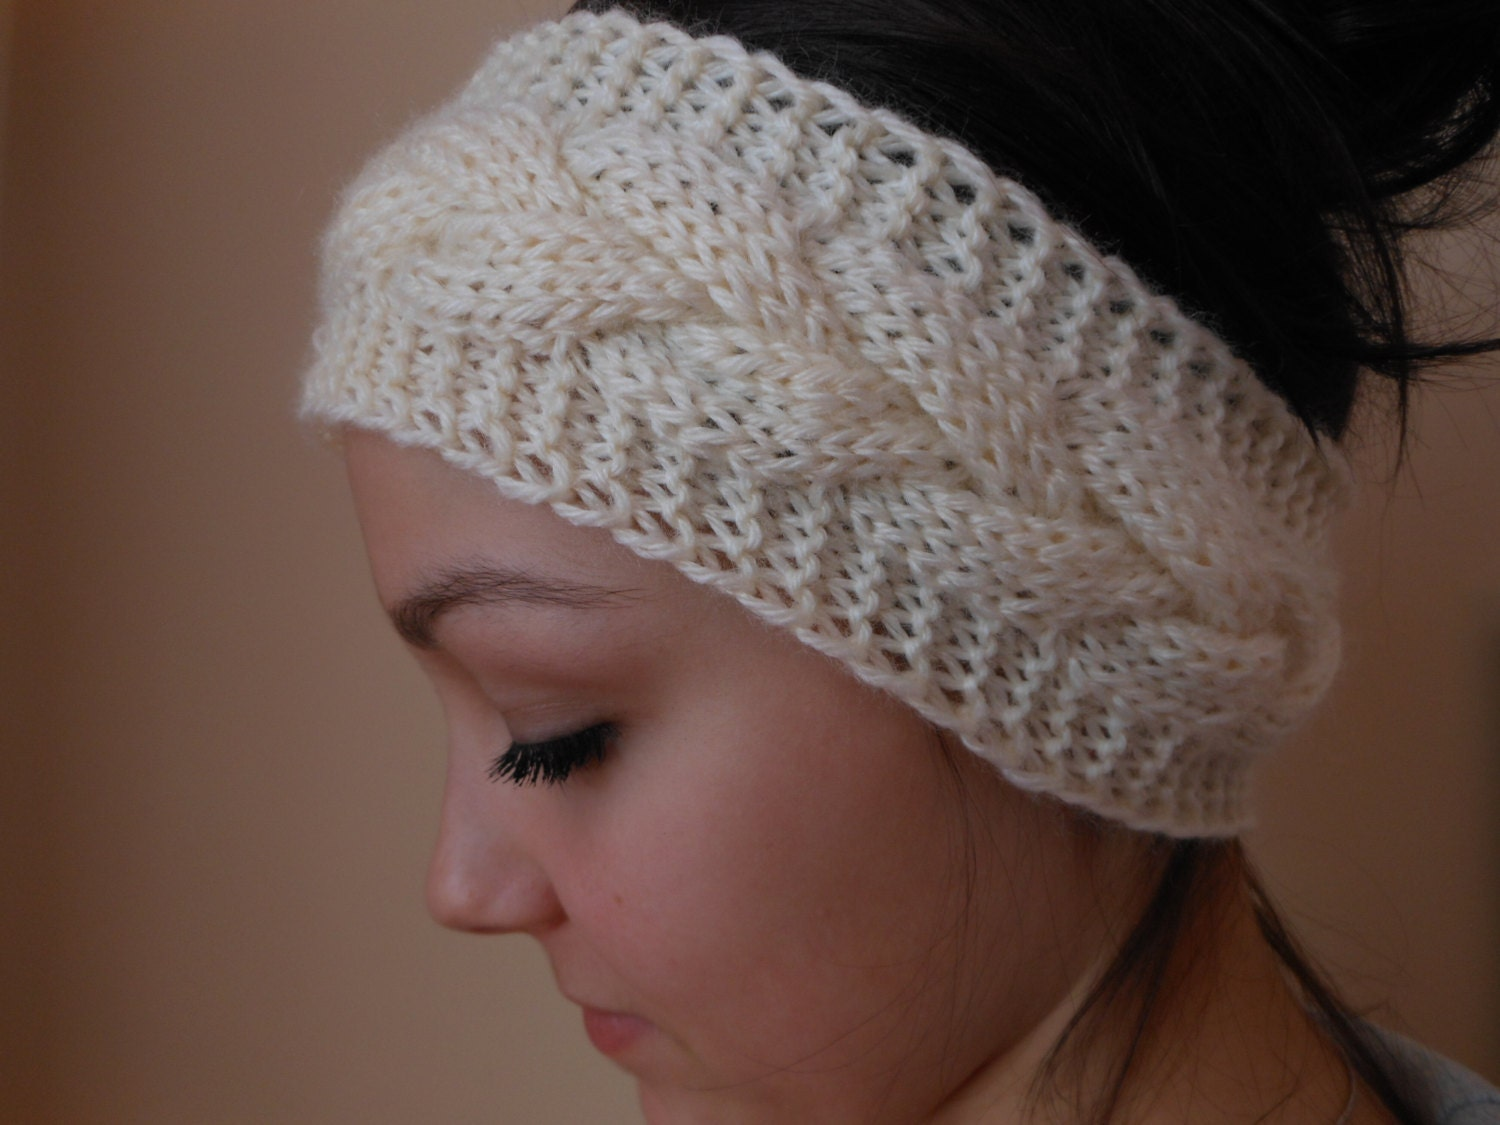 Knitting Pattern Headband Ear Warmer : Knit Cable Headband Ear Warmer Head Warmer Cream